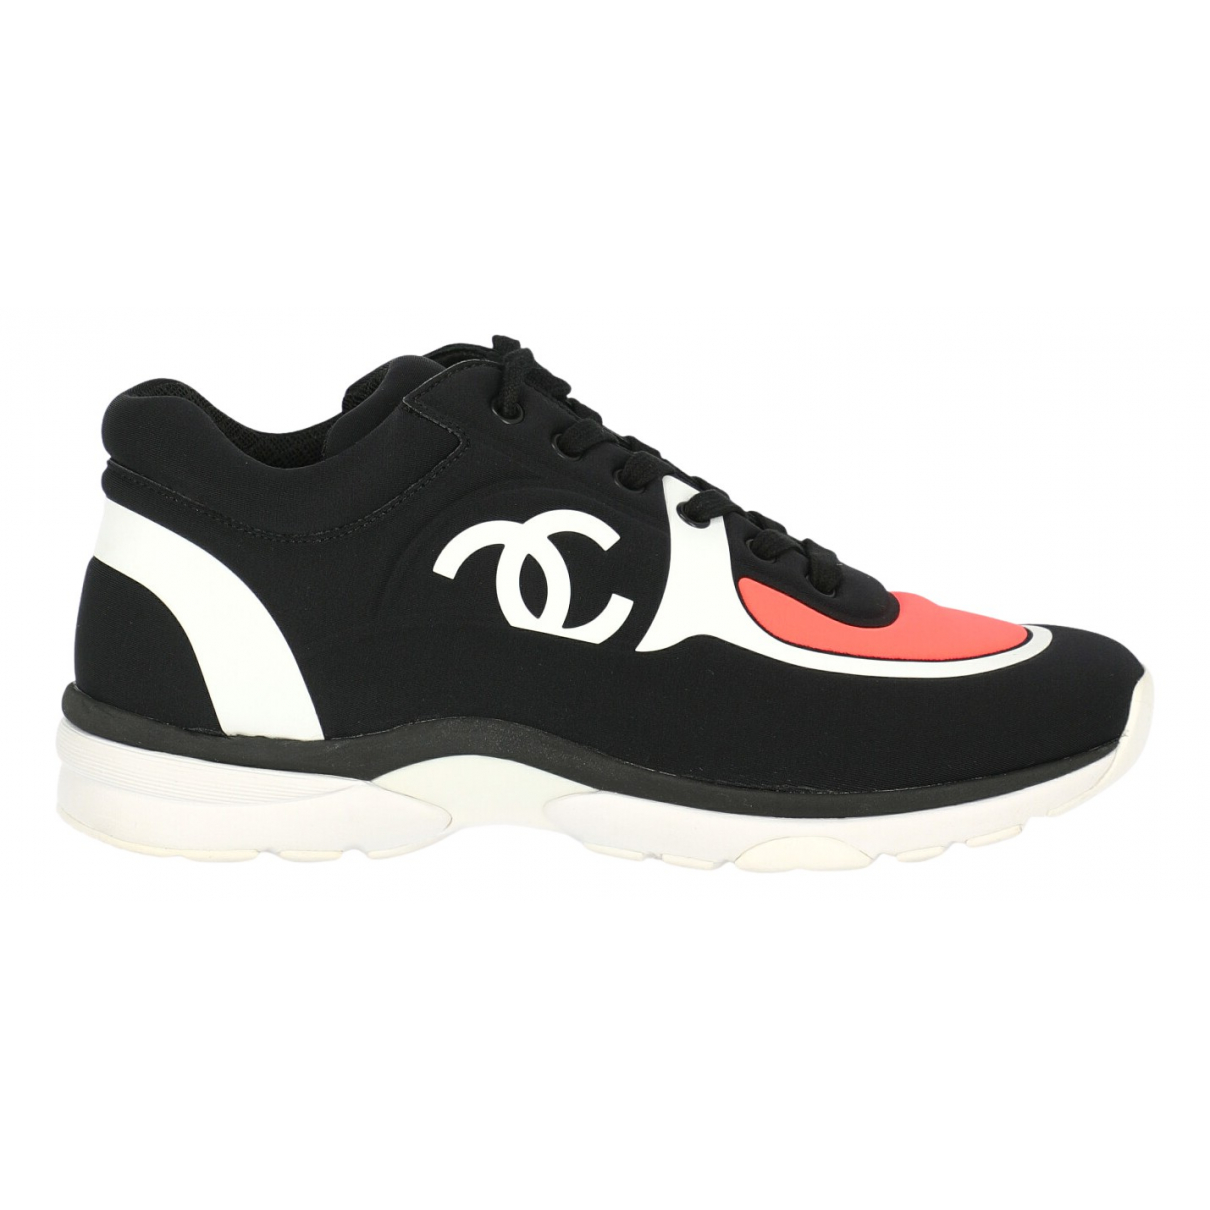 Chanel \N Sneakers in  Bunt Leinen